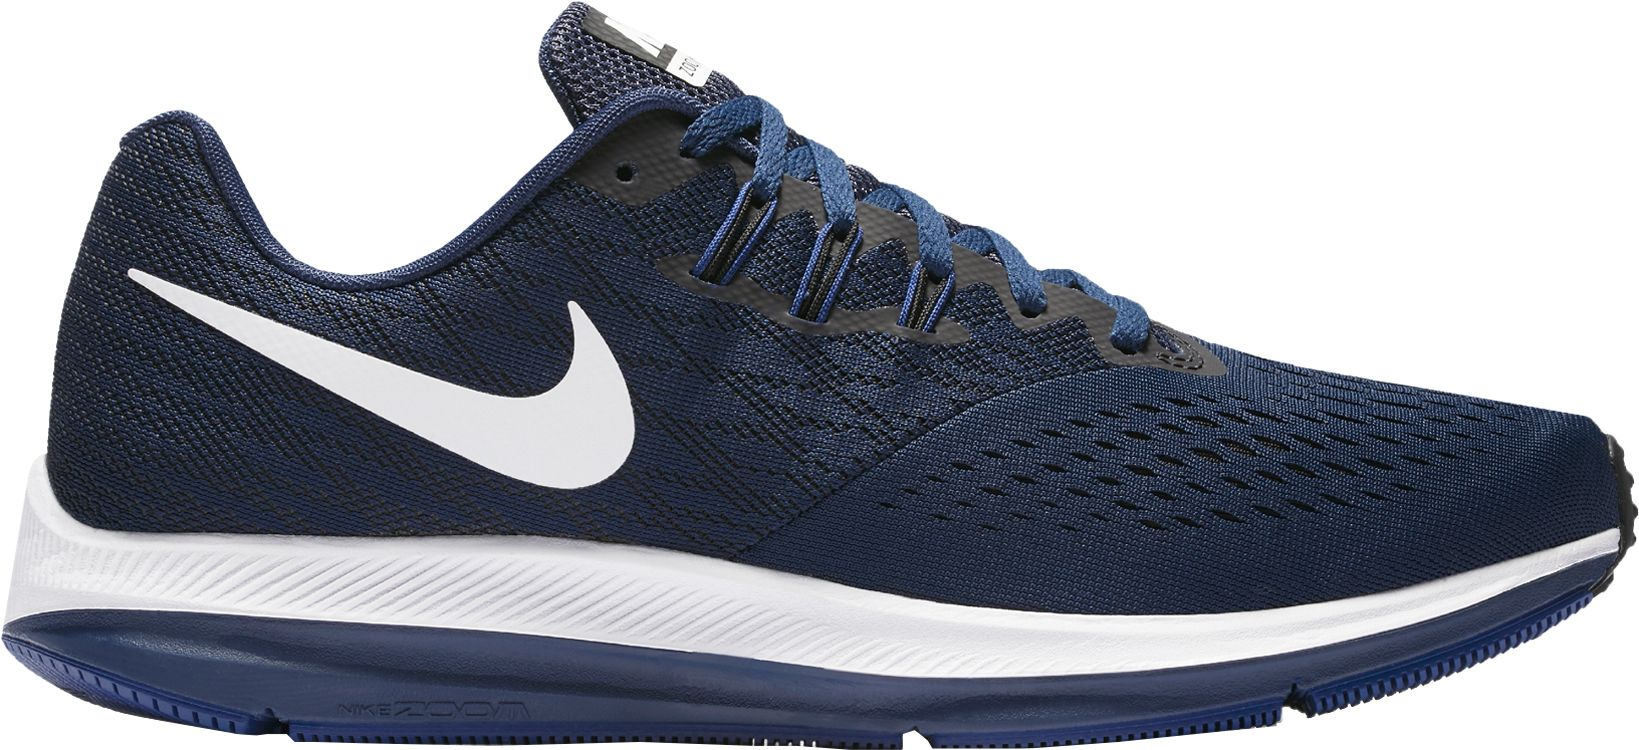 Nike Men's Zoom Winflo 4 Running... cheap get authentic cheap price for sale XHs4uFQid